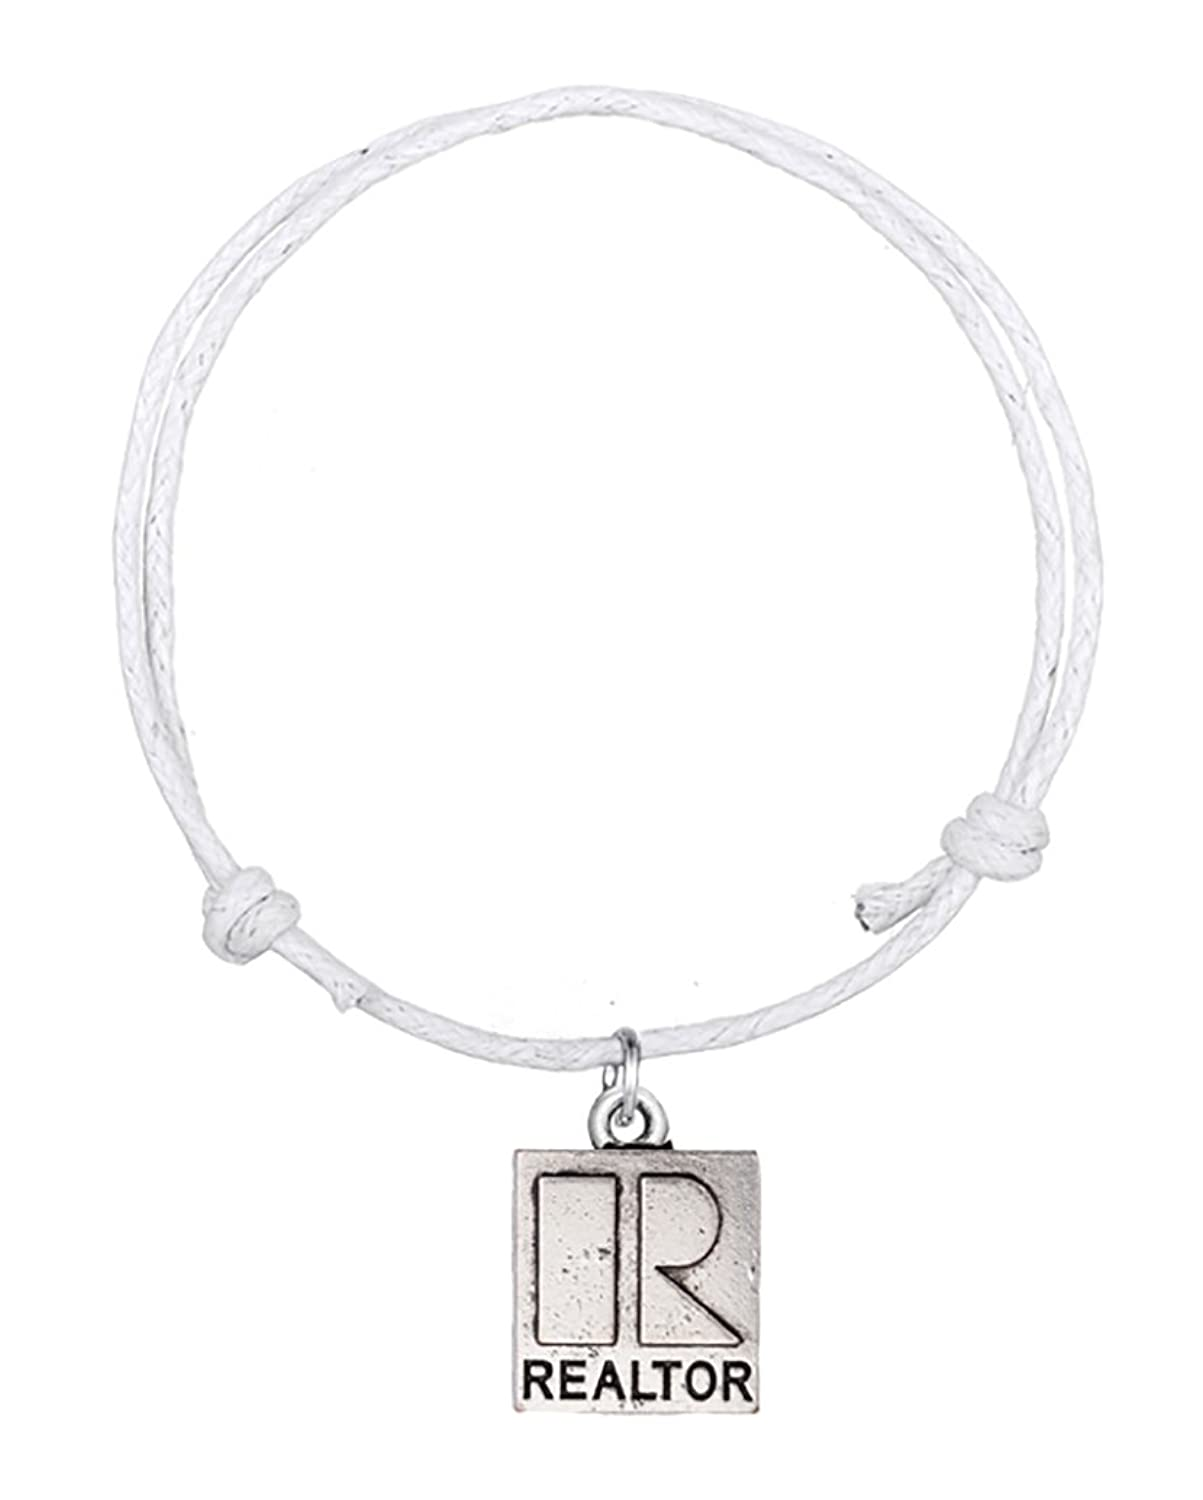 Fashion Best-selling Lettering Bracelet Word Realtor R Charms Cuff Wristband Wax Cord Bangle